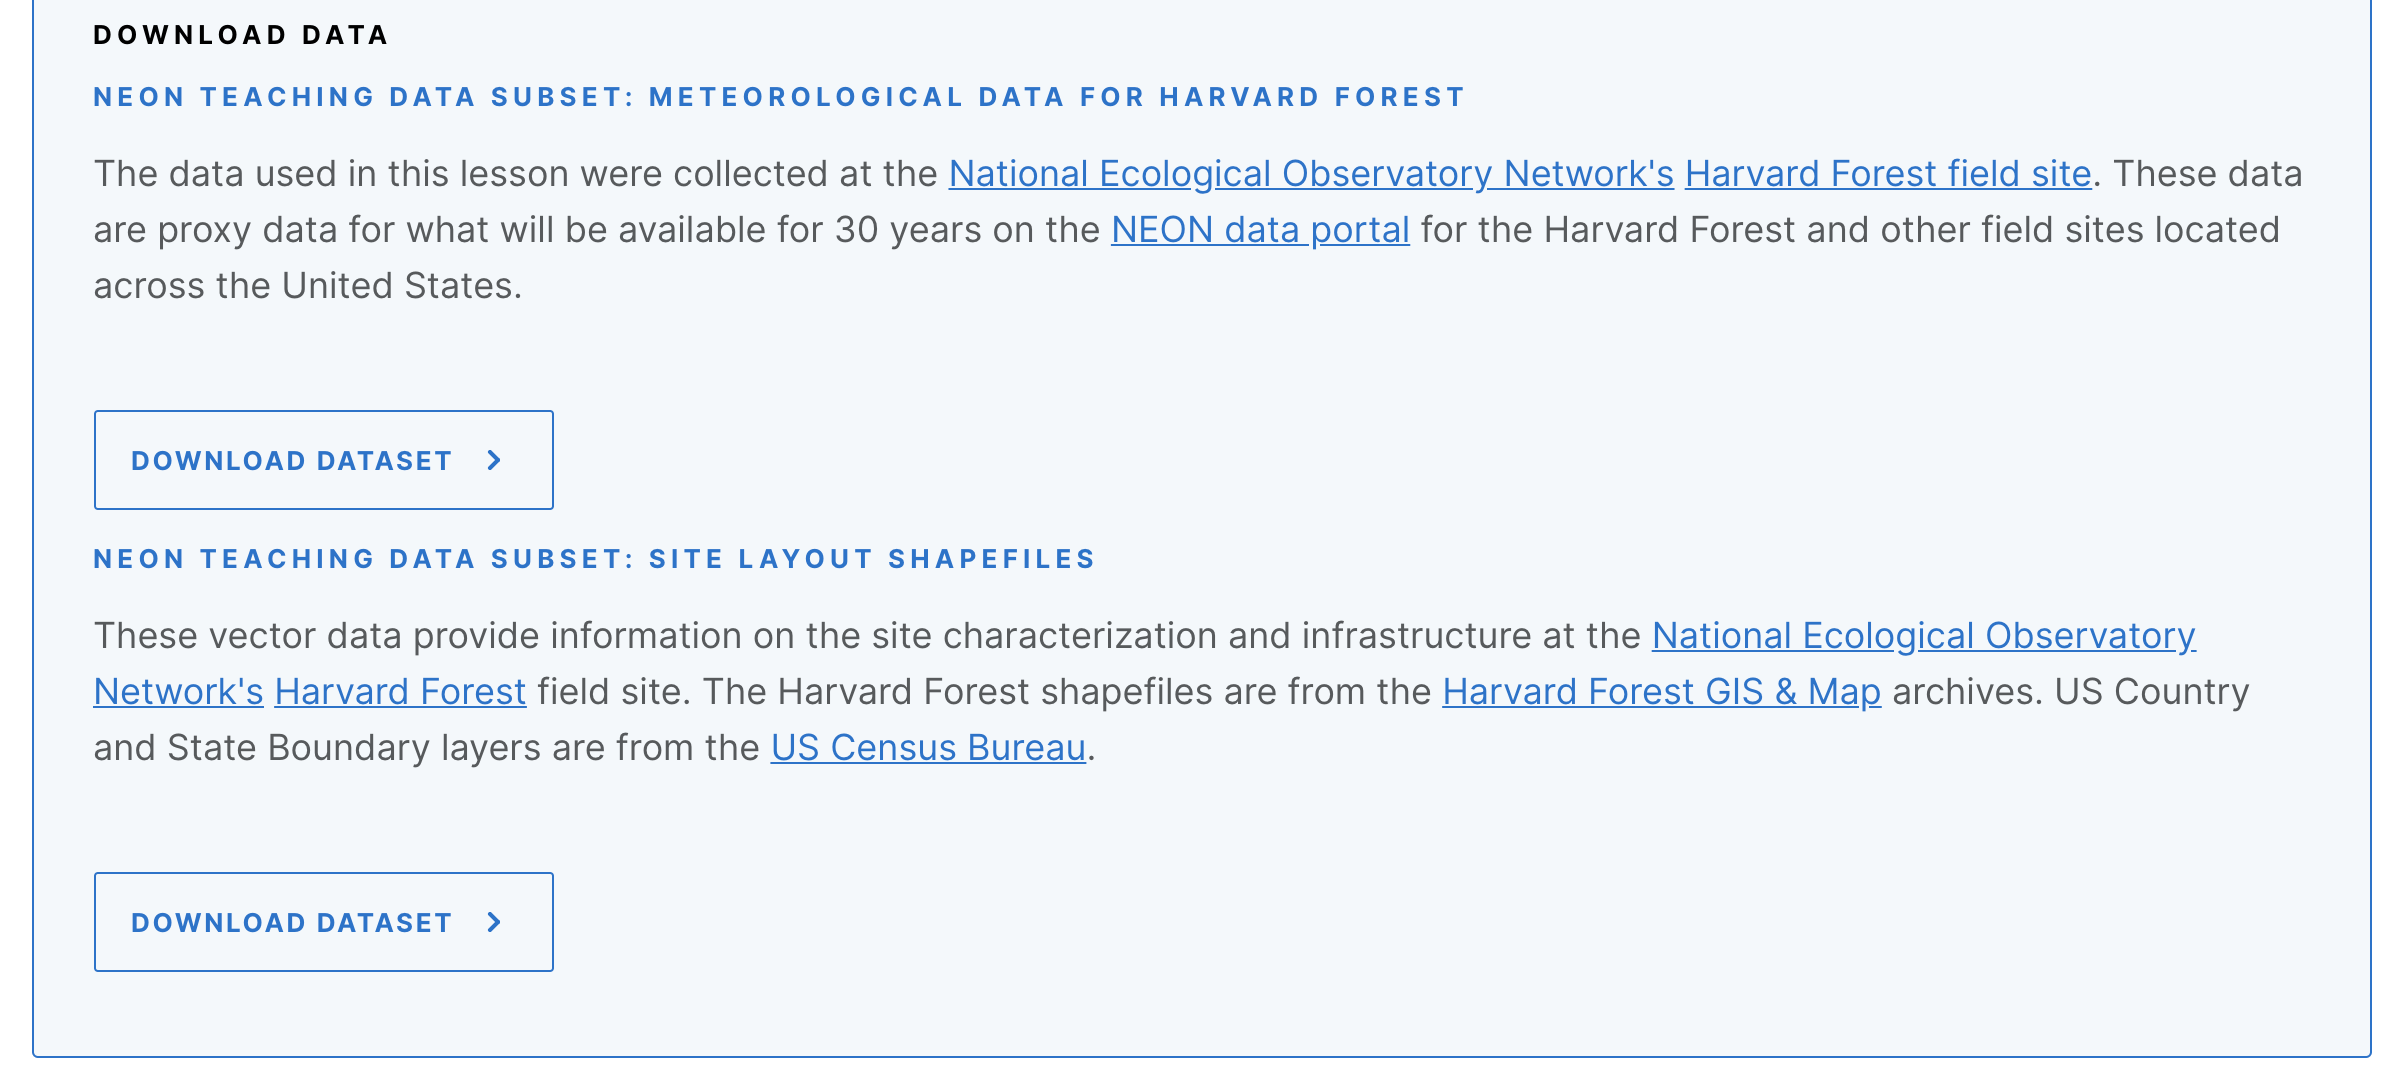 Example Download Data box containing two download buttons, one labeled 'Download NEON Teaching Data Subset: Meteorological Data for Harvard Forest' and another labeled 'Download NEON Teaching Data Subset: Site Layout Shapefiles